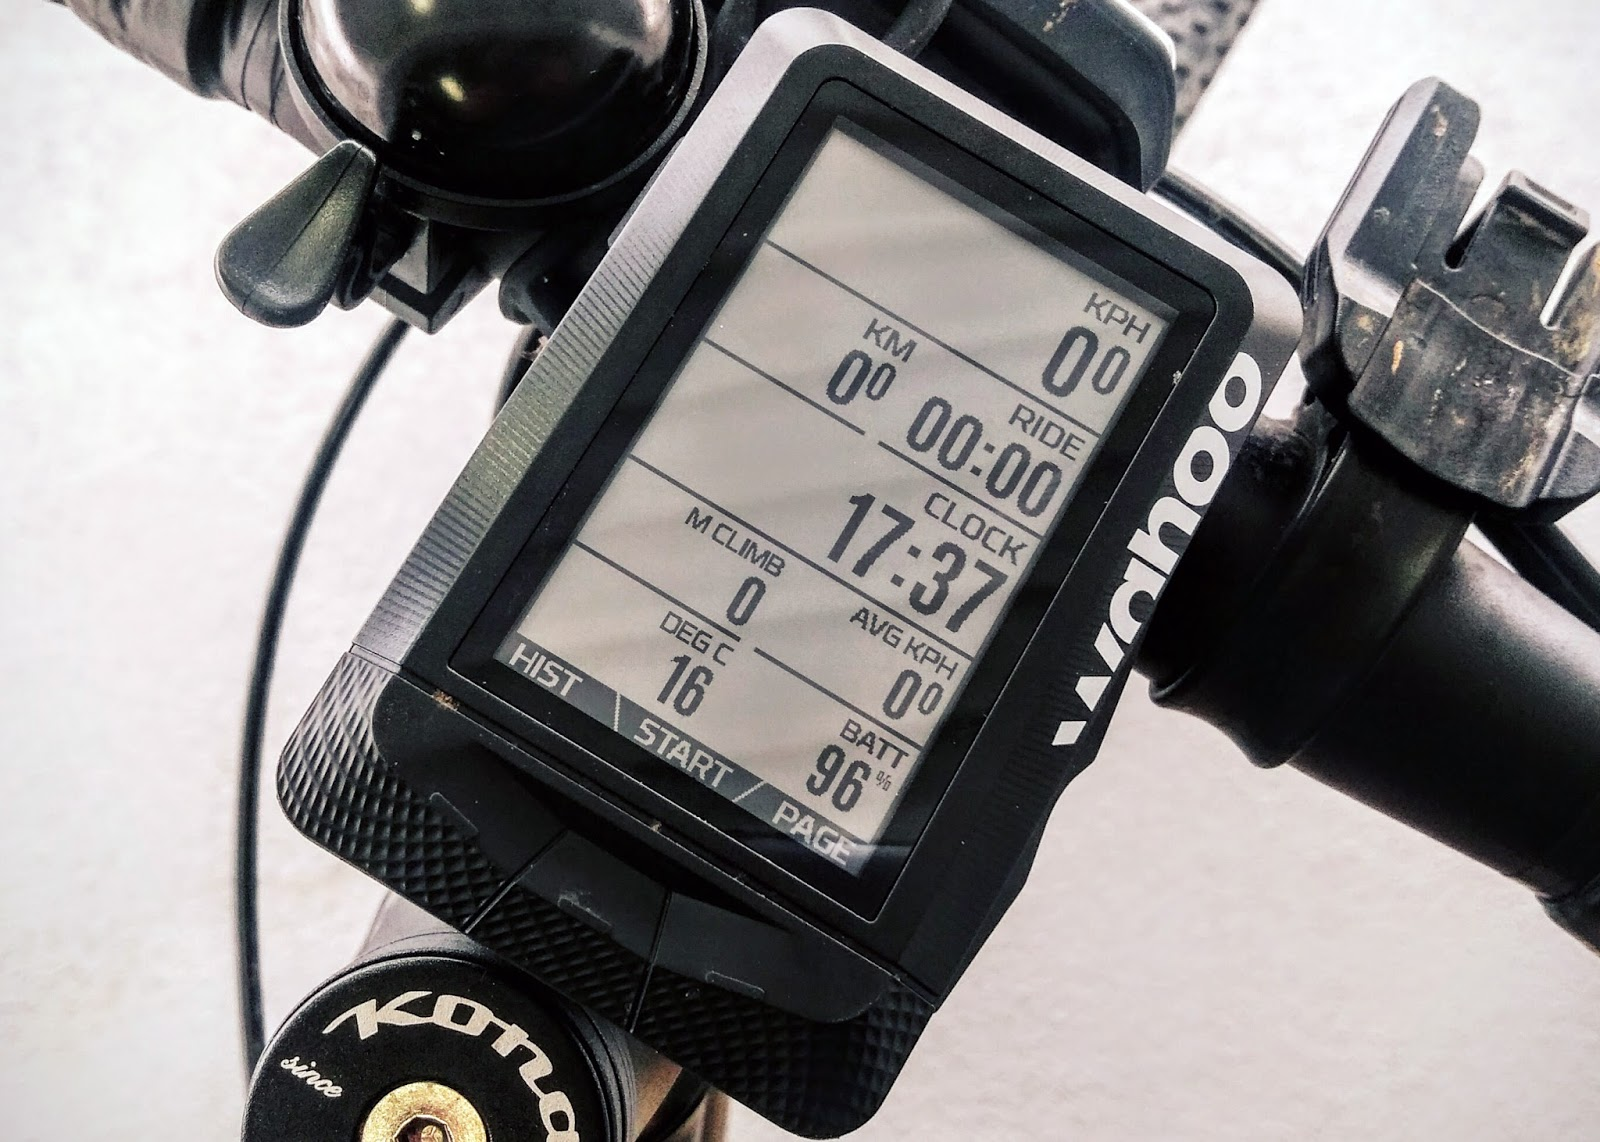 Review: Wahoo ELEMNT GPS Cycle Computer